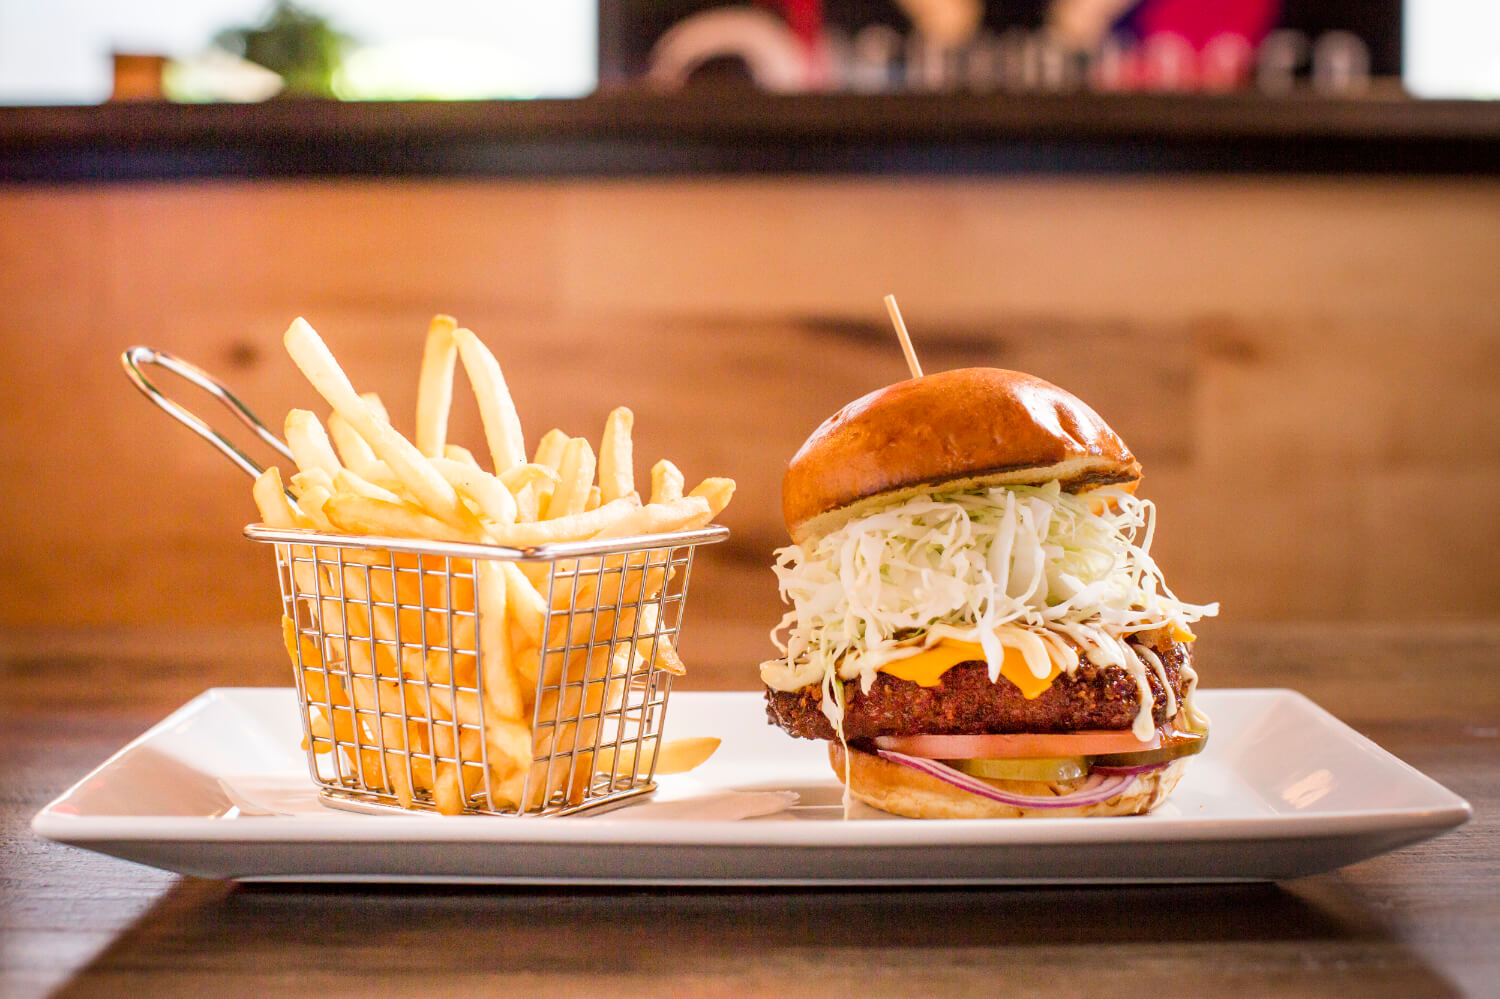 """Oishii Burgers offers fare that lives up to meaning of its name: """"tasty"""""""